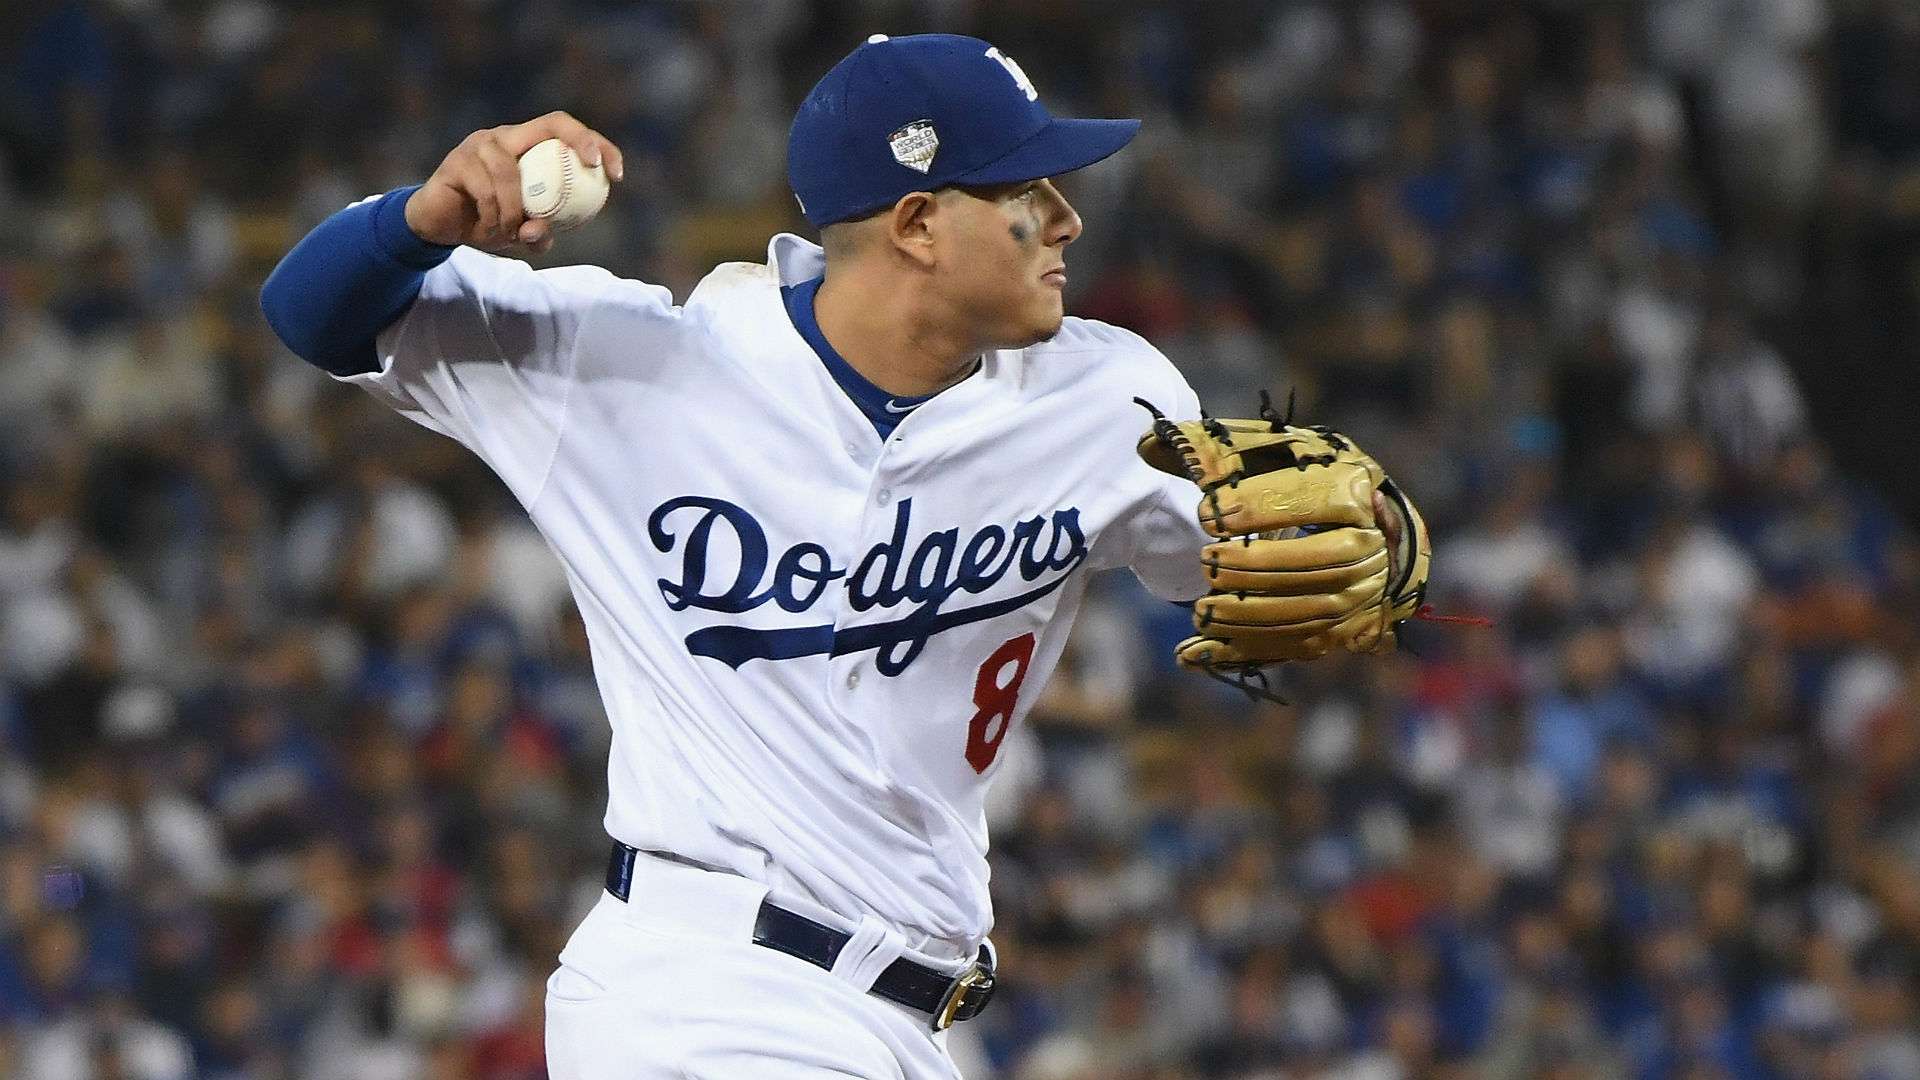 Red Sox shouldn't be concerned if Manny Machado joins Yankees